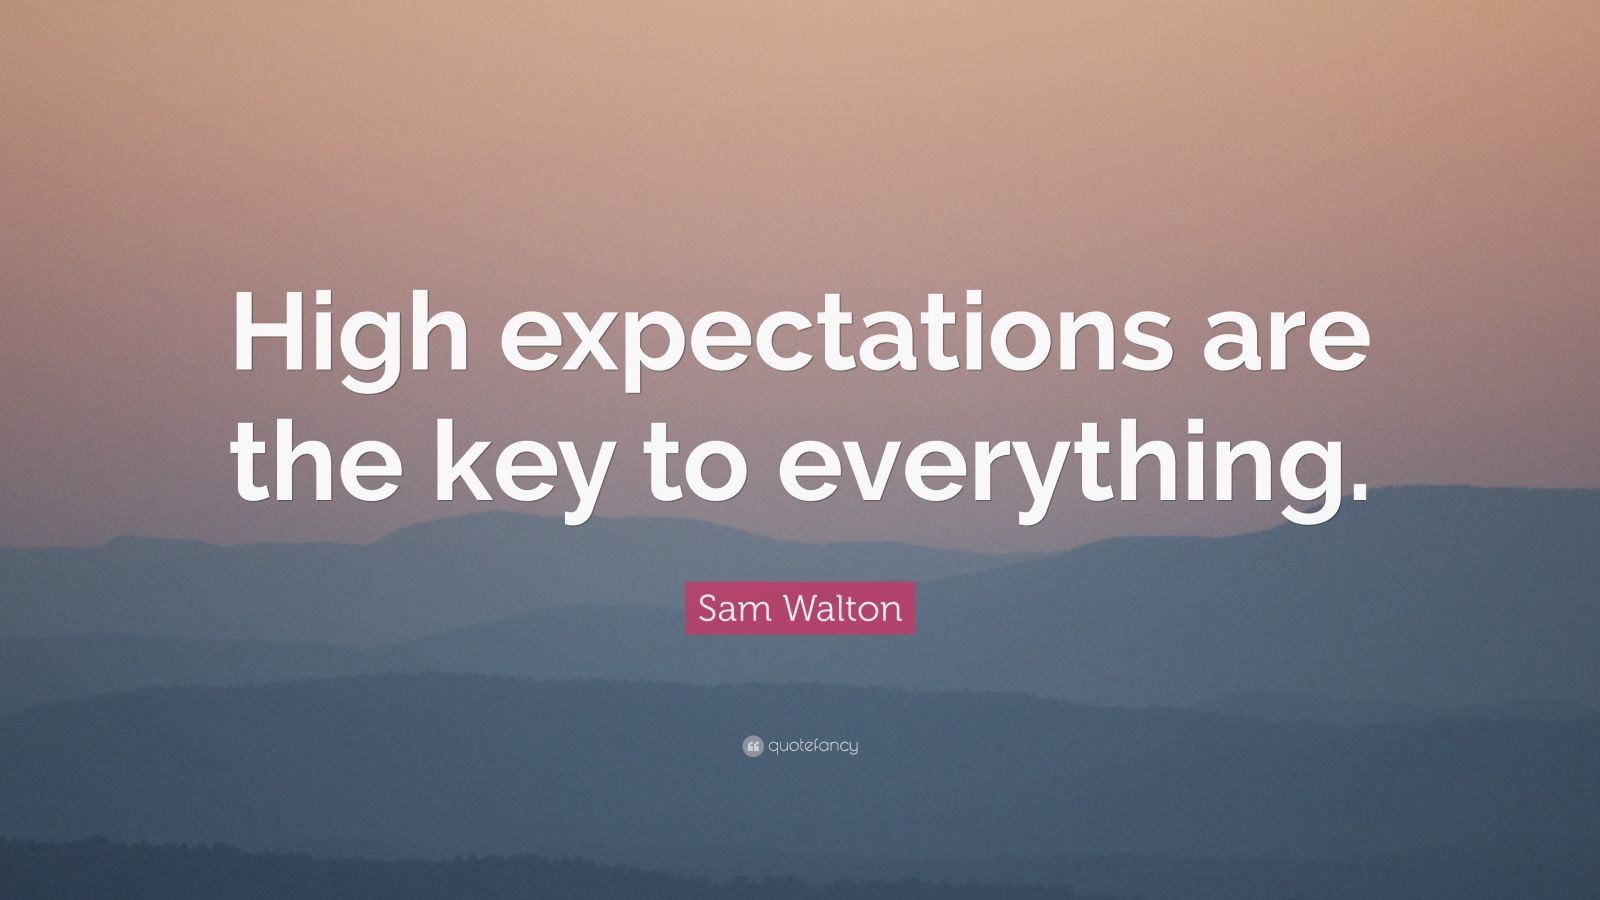 Gary Vaynerchuk Quotes Wallpaper Sam Walton Quote High Expectations Are The Key To